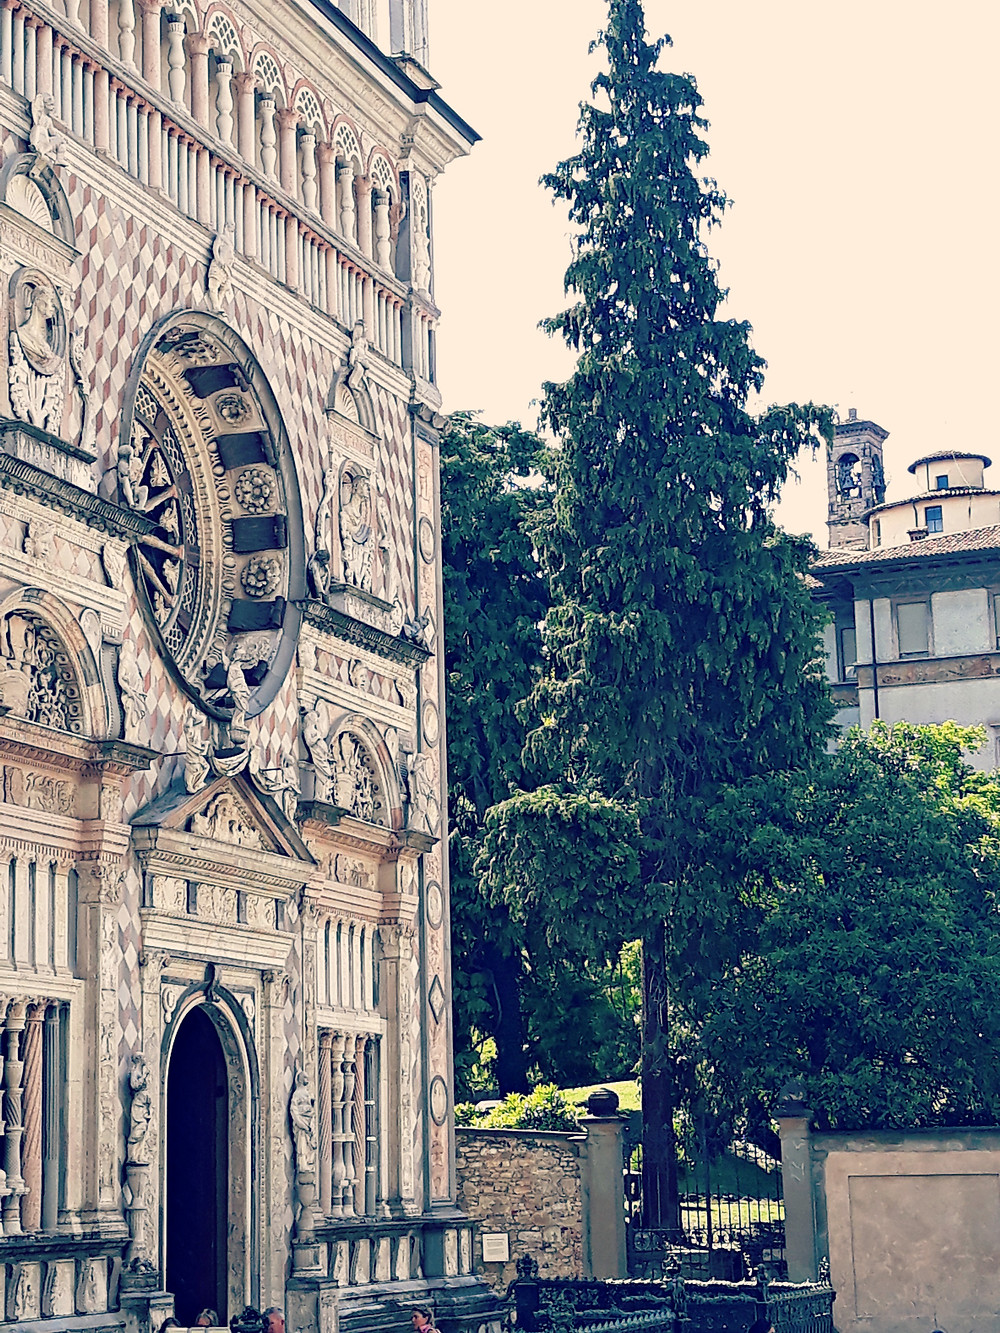 The Colleoni Chapel in Bergamo's old town is a renaissance masterpiece.